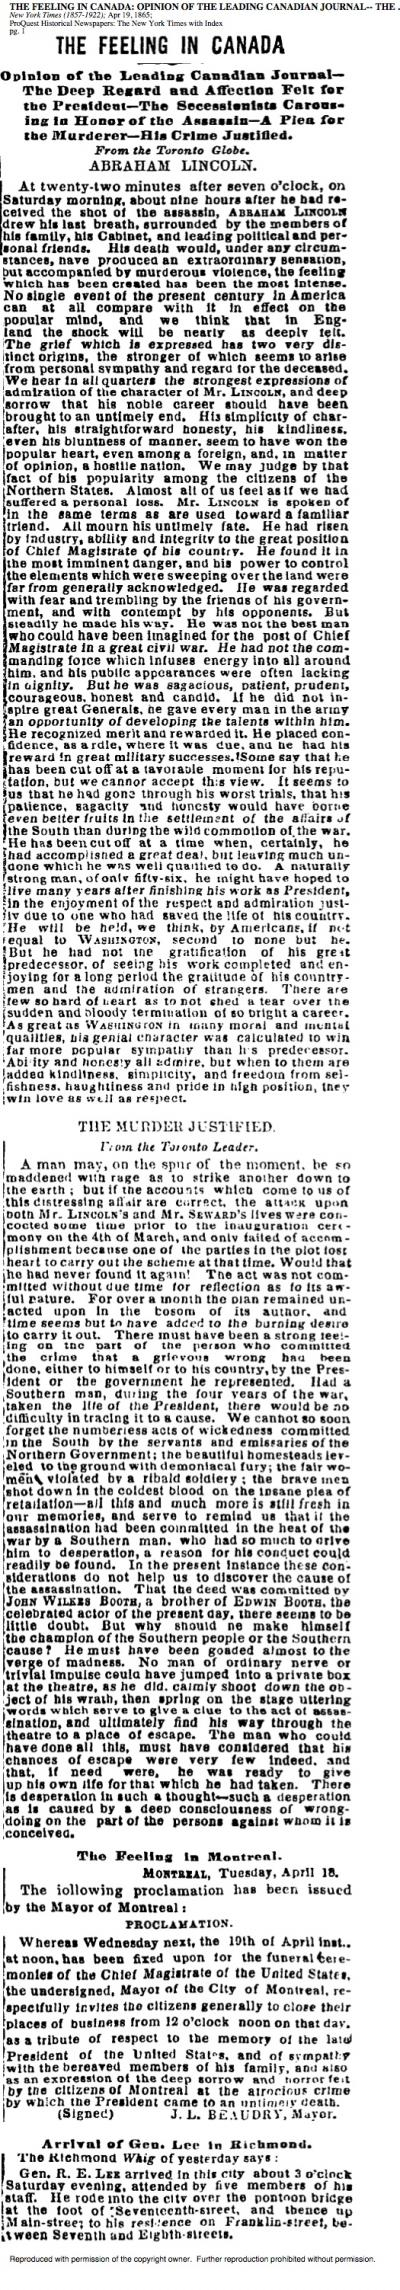 The Toronto Globe - The Feeling in Canada: Opinion of the Leading Canadian Journal - The Deep Regard and Affection Felt for the President - The Secessionists Carousing in Honor of the Assassin - A Plea for the Murderer - His Crime Justified